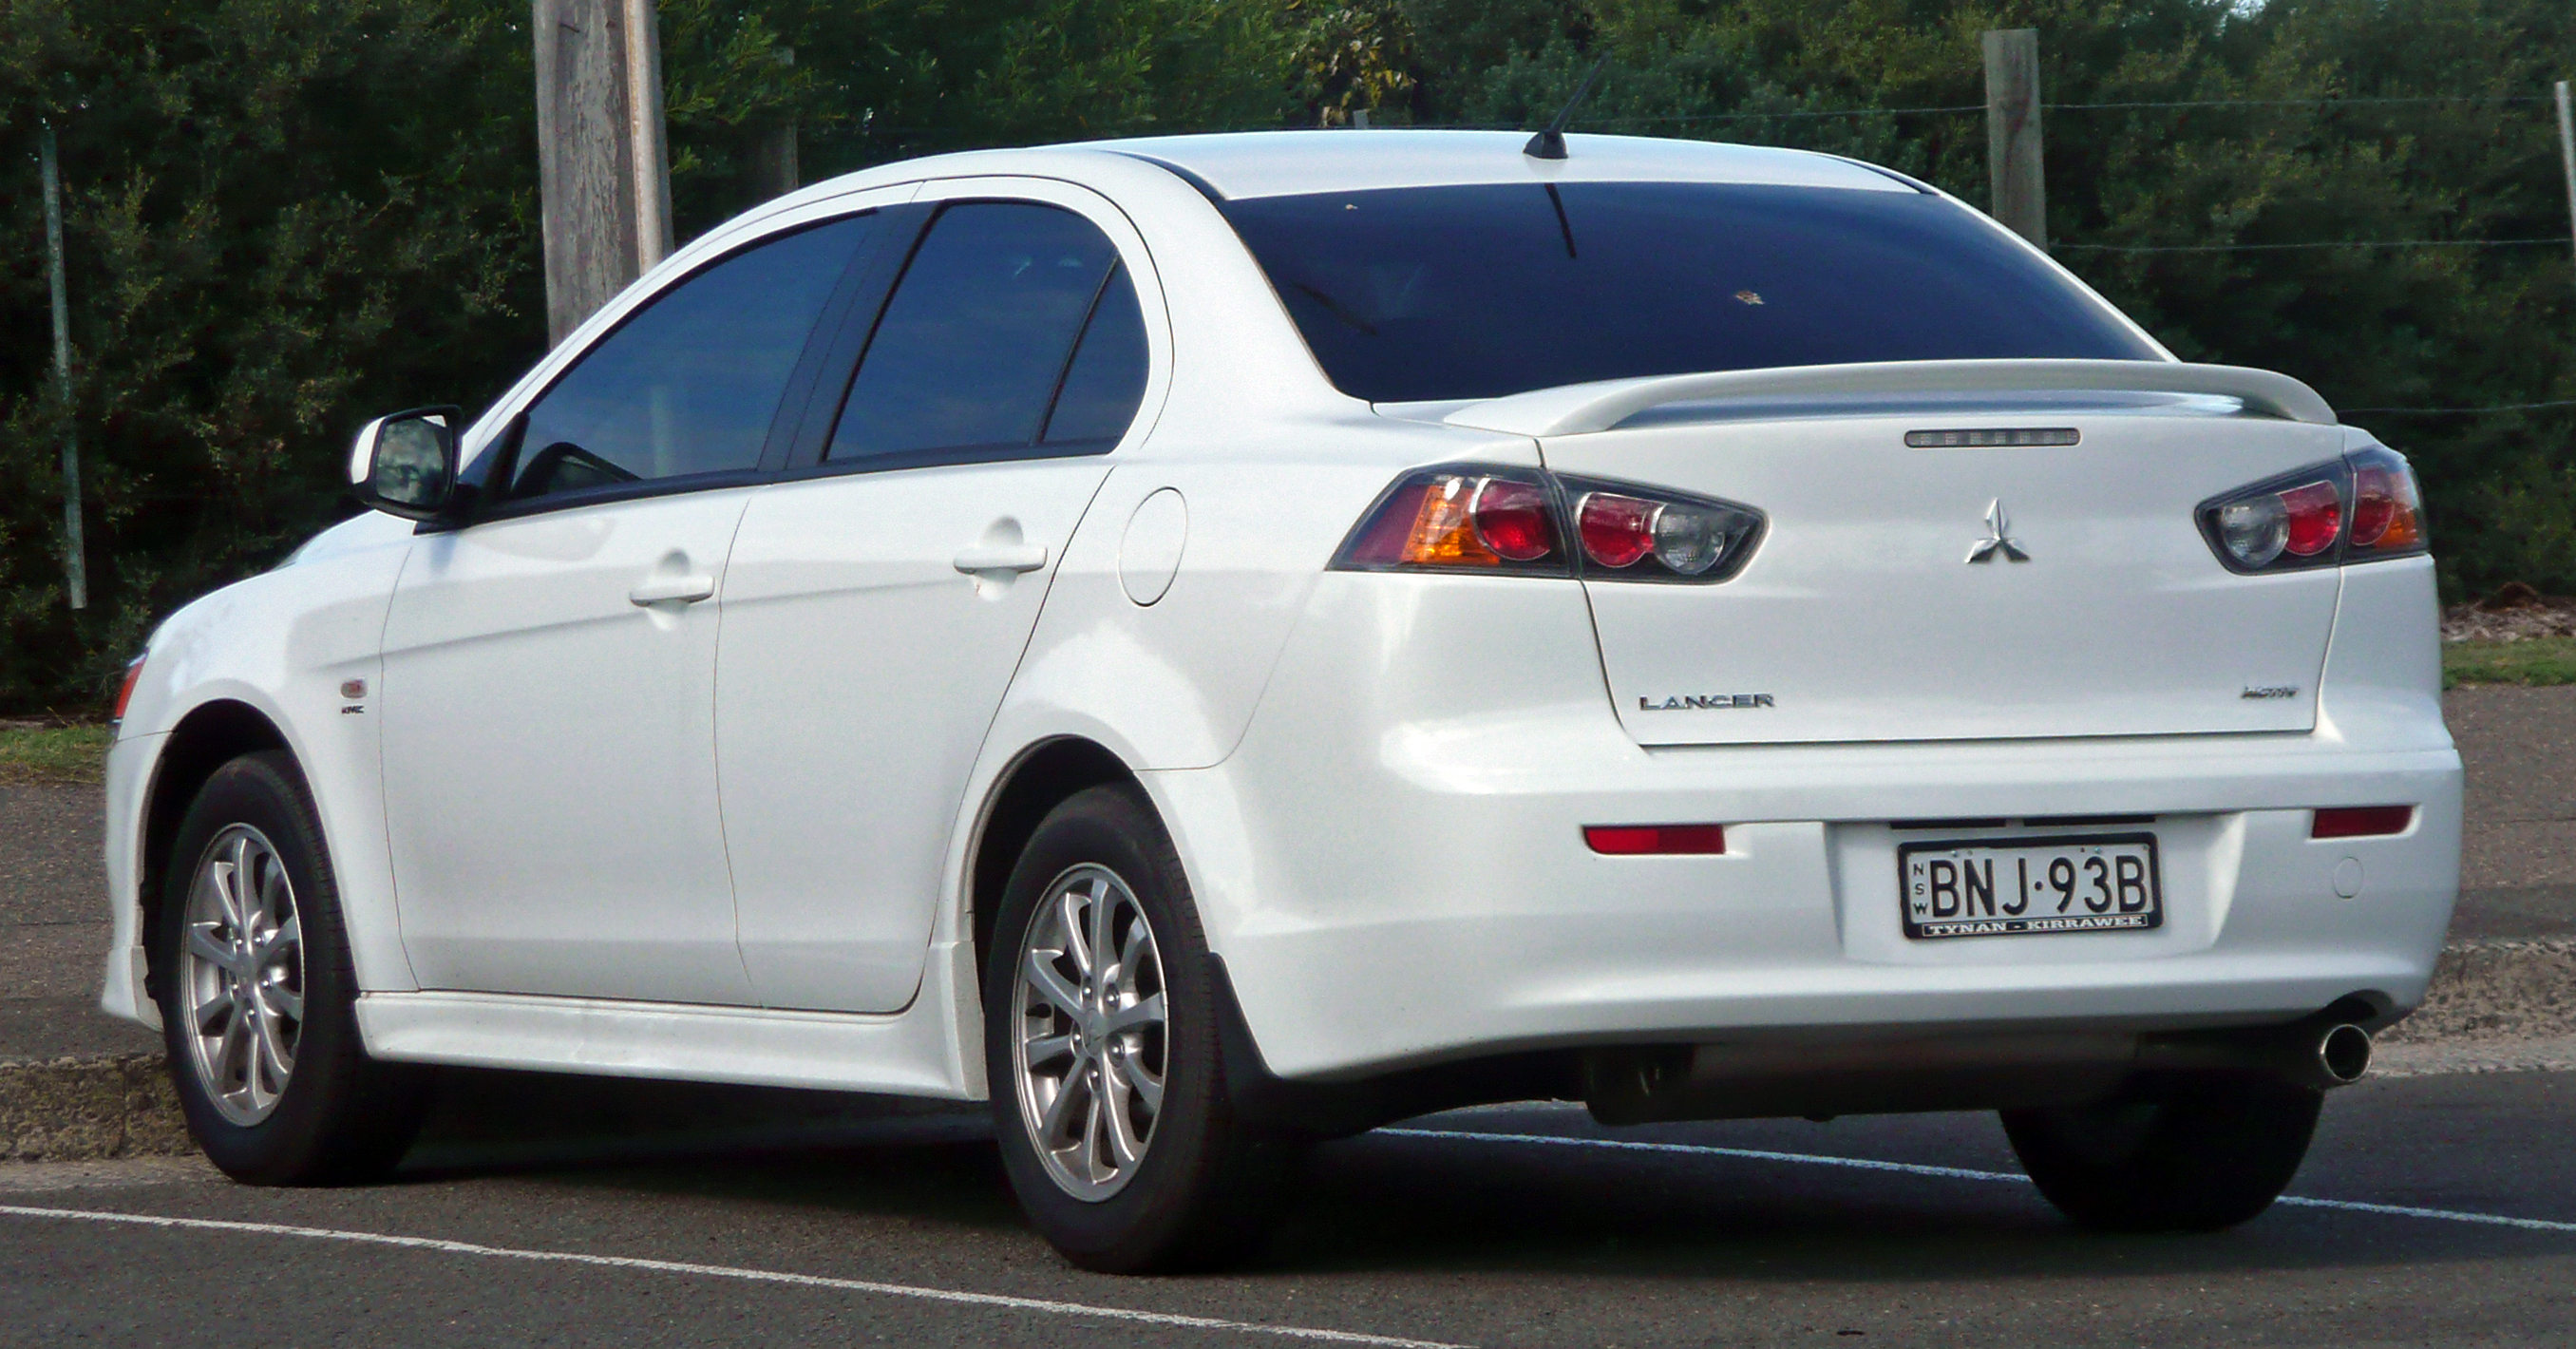 file2010 mitsubishi lancer cj my10 activ sedan 02jpg